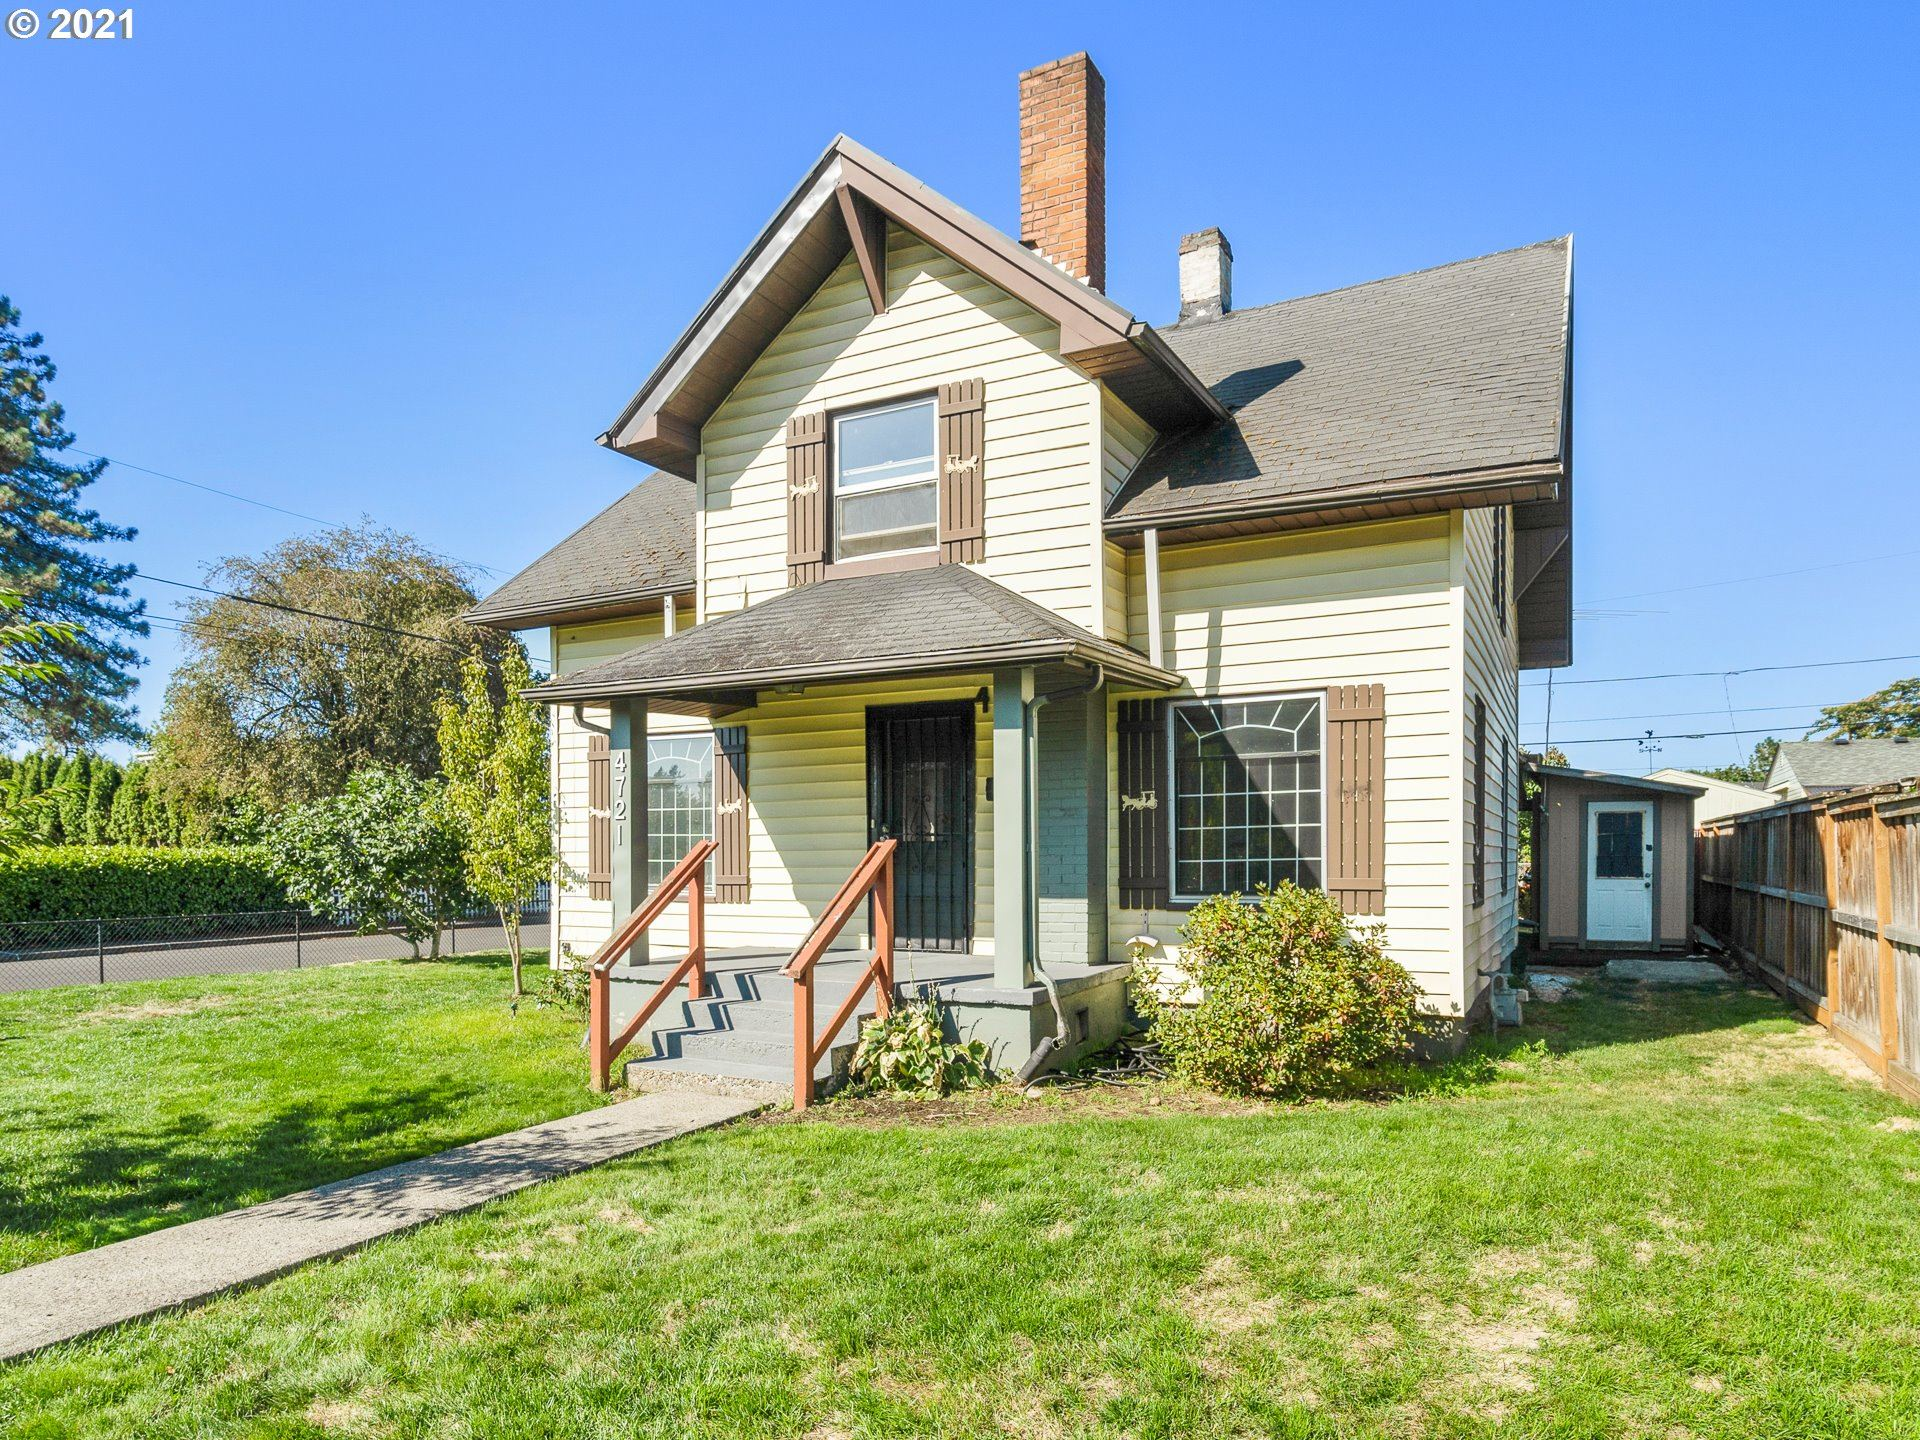 4721 SE 87TH AVE, Portland, OR 97266 - MLS#: 21234157